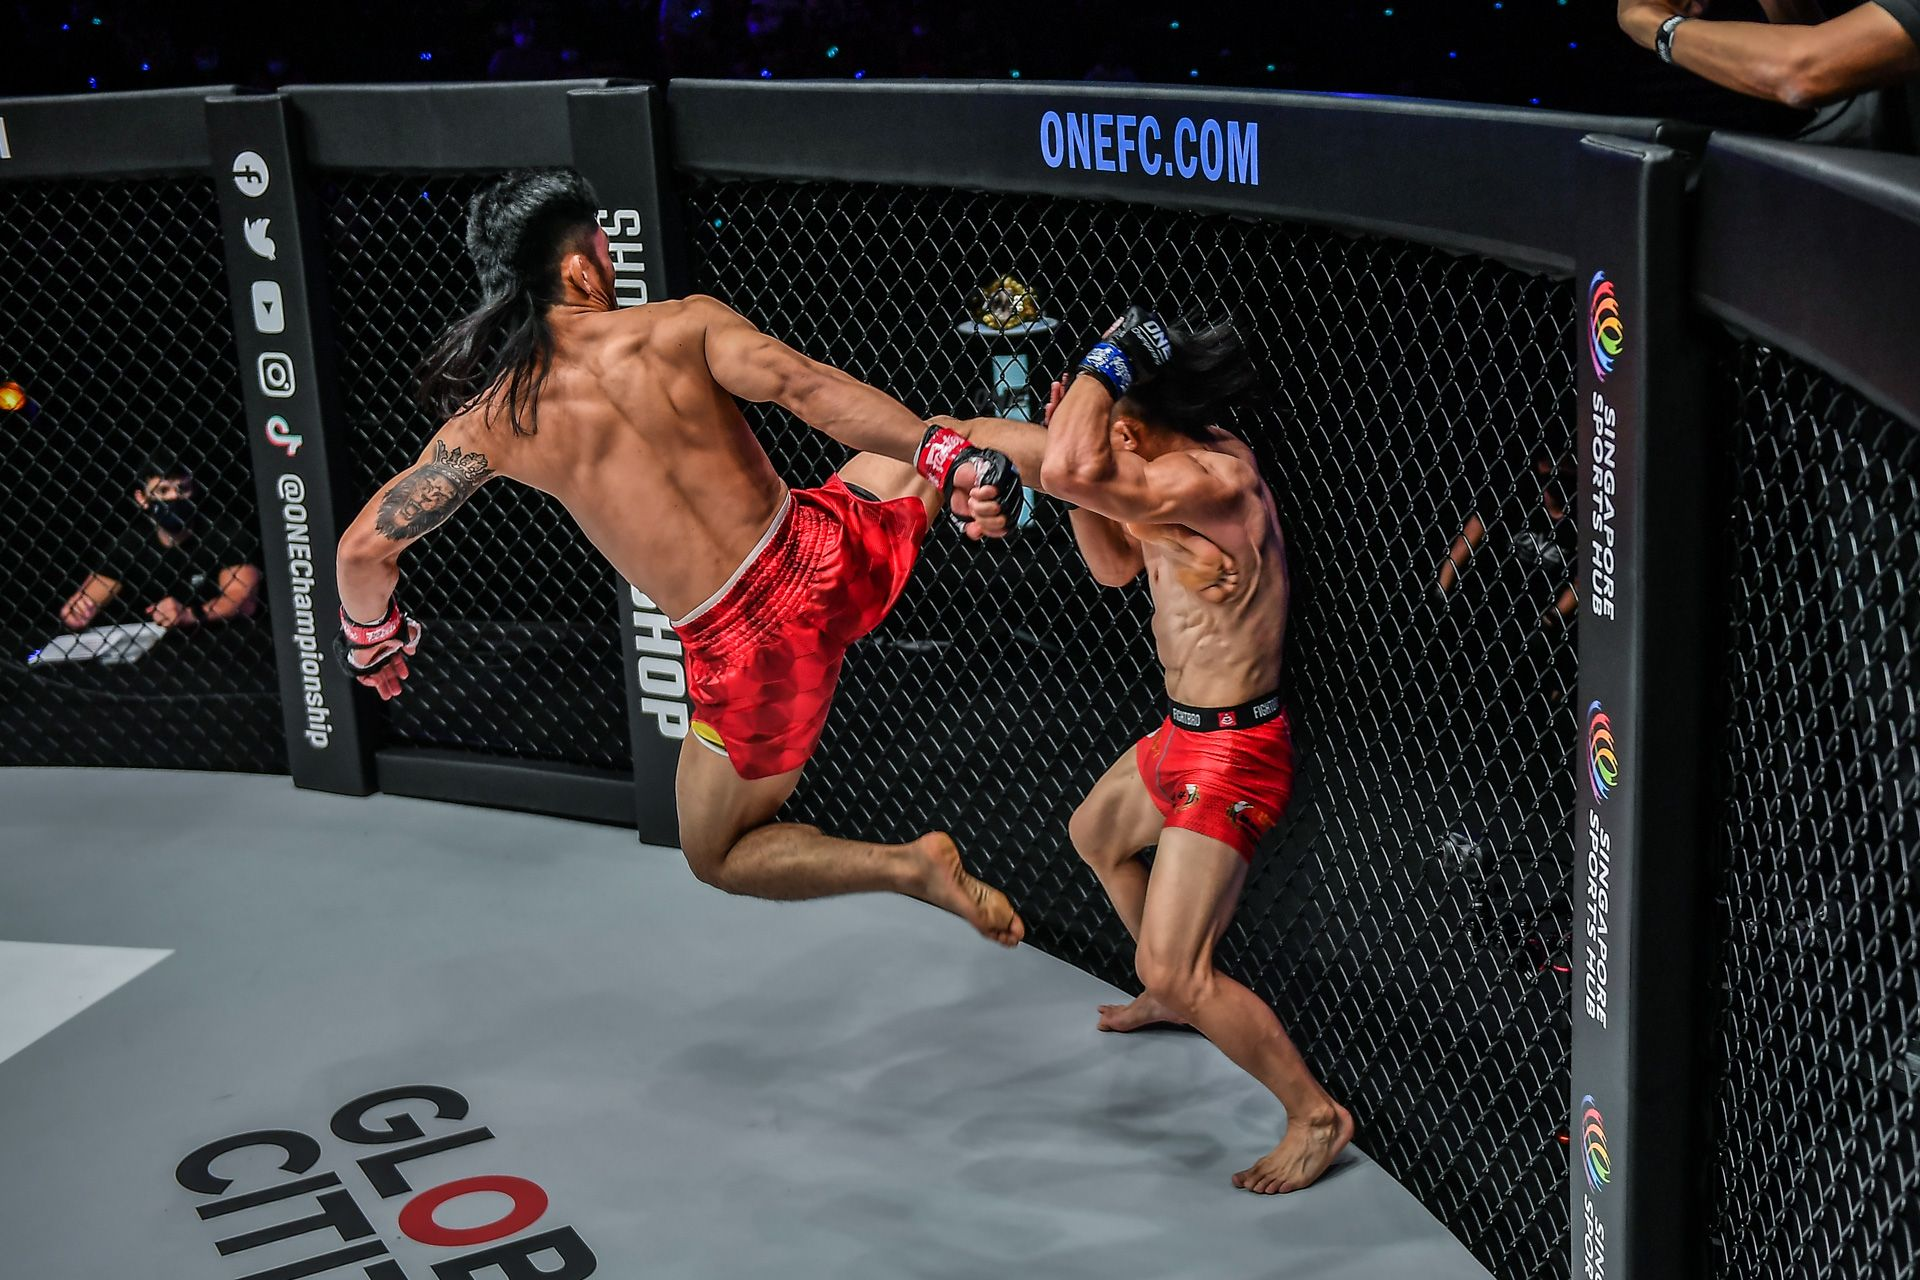 ONE-Revolution-Adiwang-flying-kick-to-Hexigetu Adiwang on Brooks: 'He's just an unlucky guy who talks and acts like a monkey' Mixed Martial Arts News ONE Championship  - philippine sports news